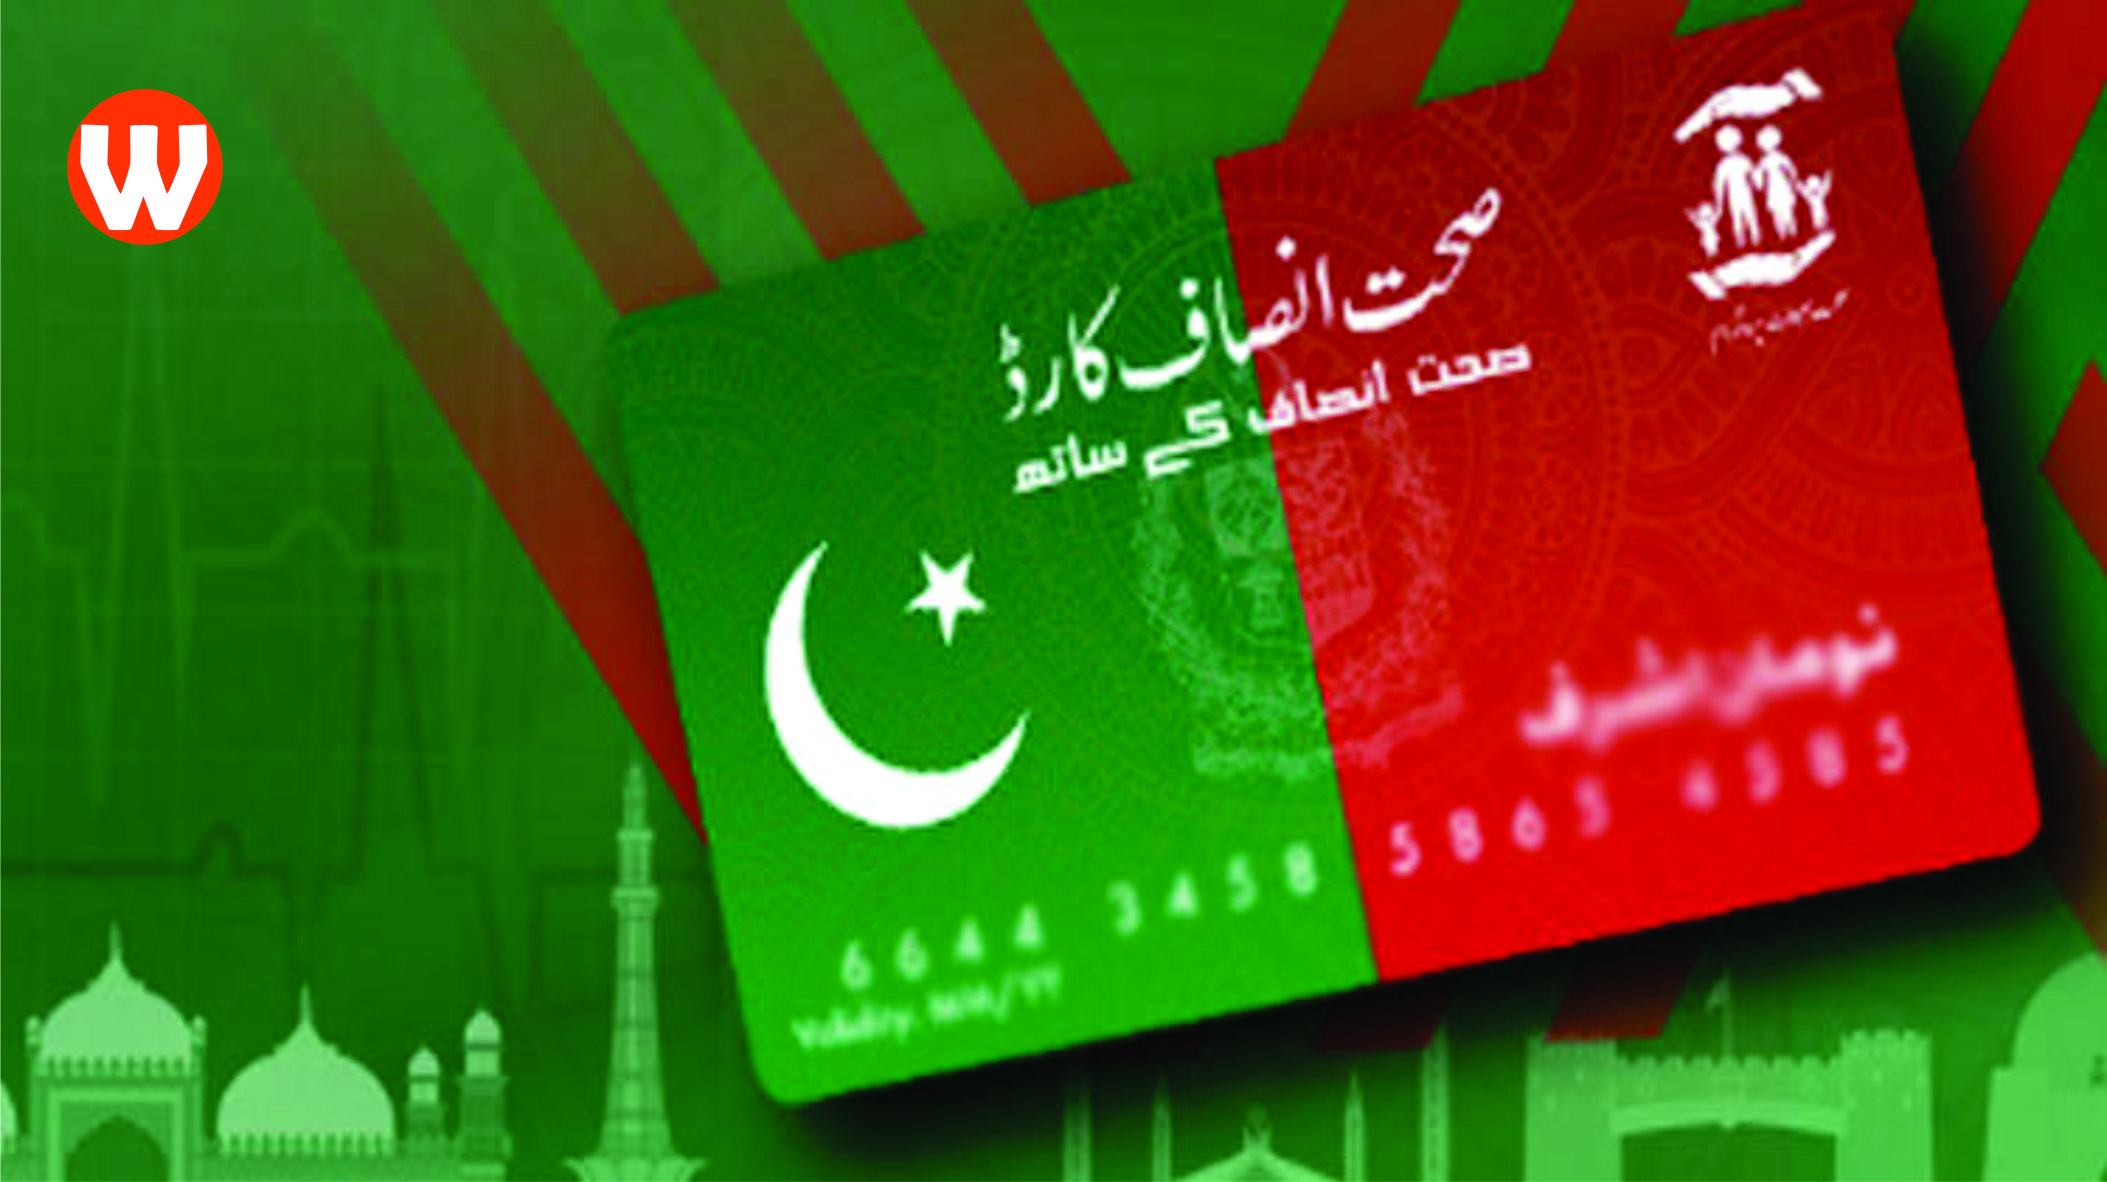 Photo of How To Apply For Sehat Insaf Card in Punjab?